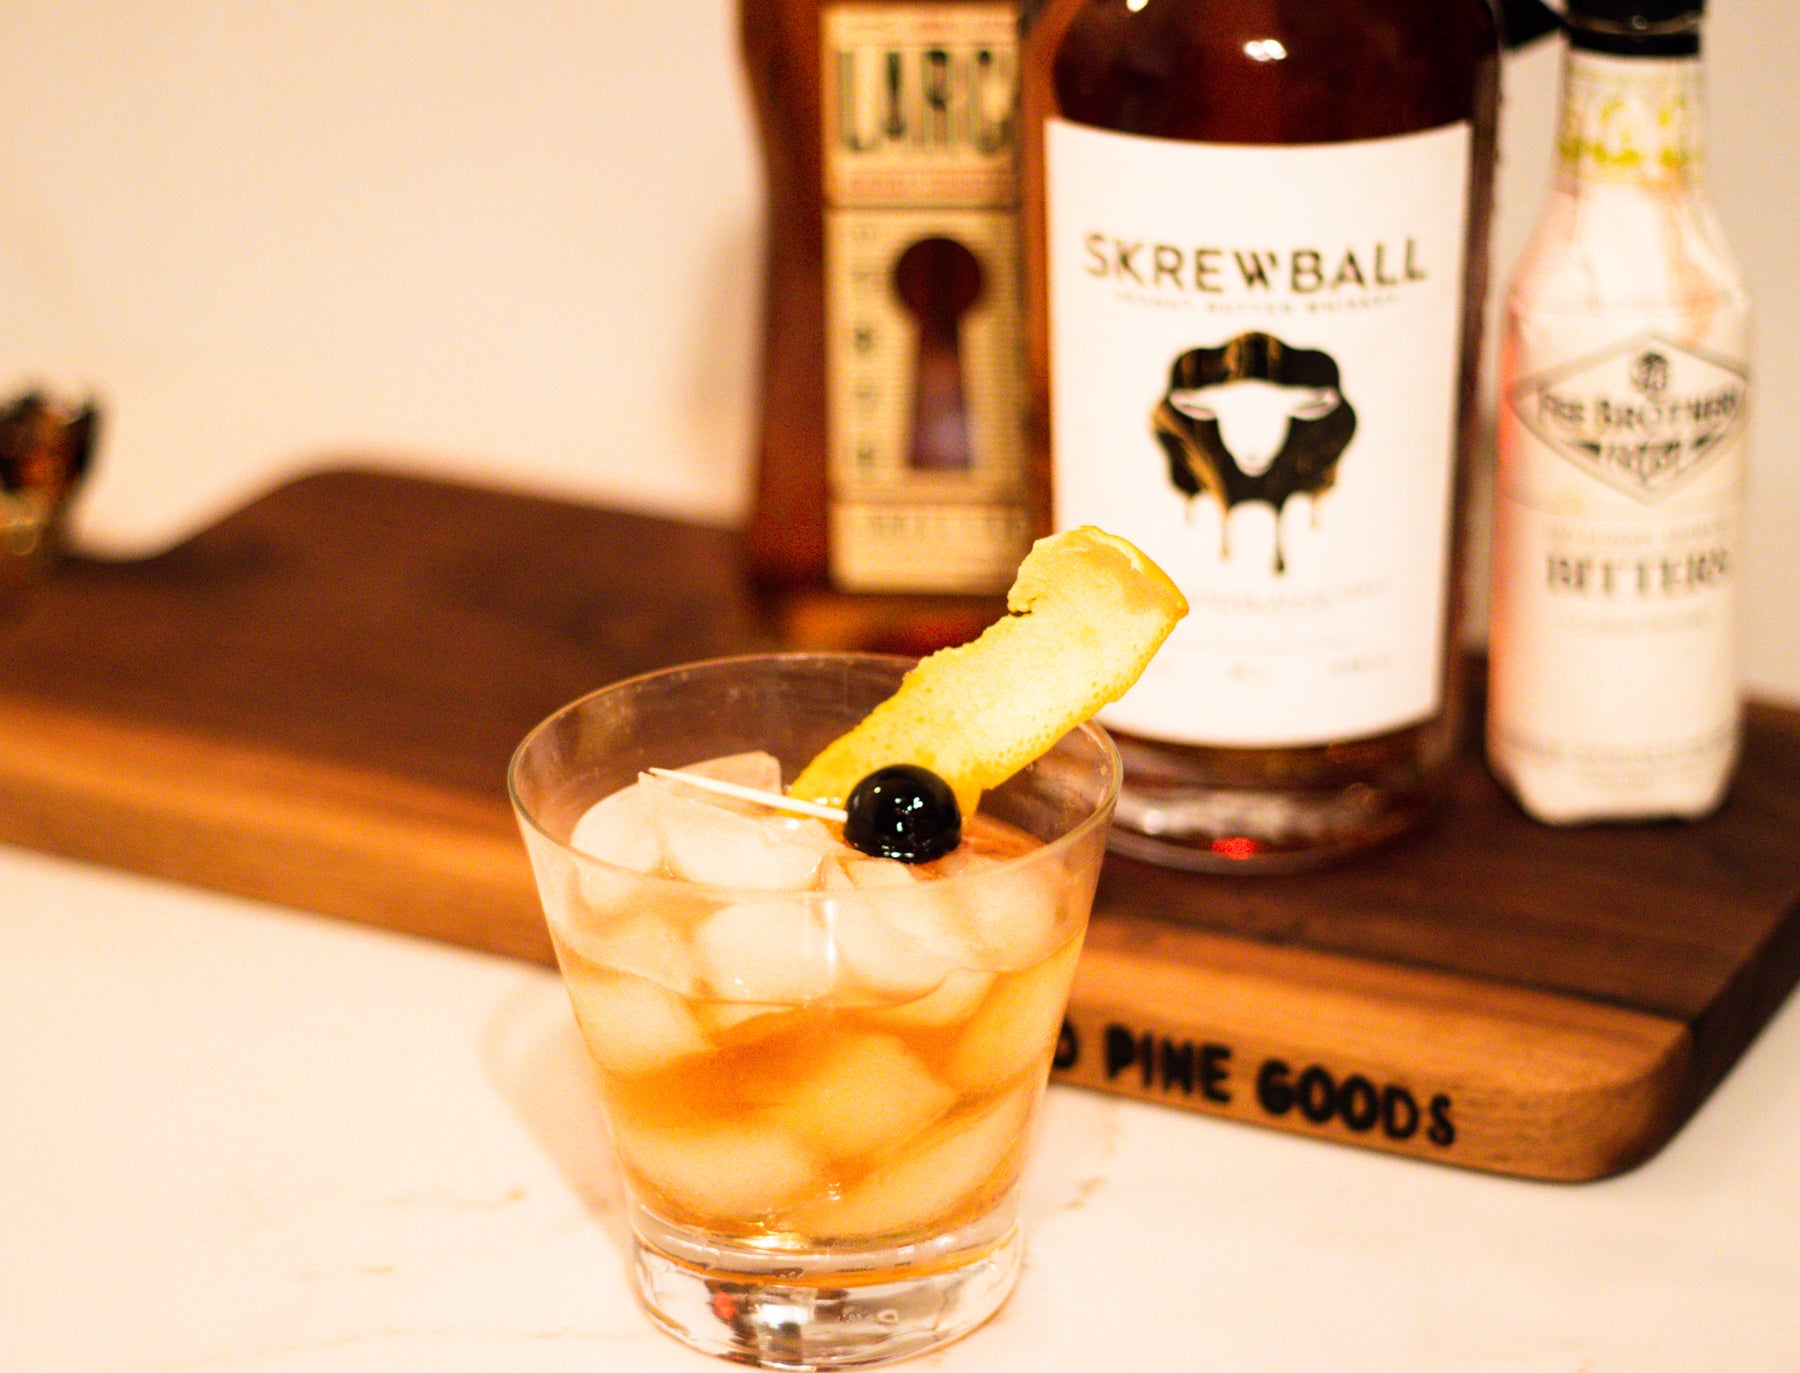 Peanut Butter Old Fashioned with skrewball whiskey, an orange peel, and a cherry